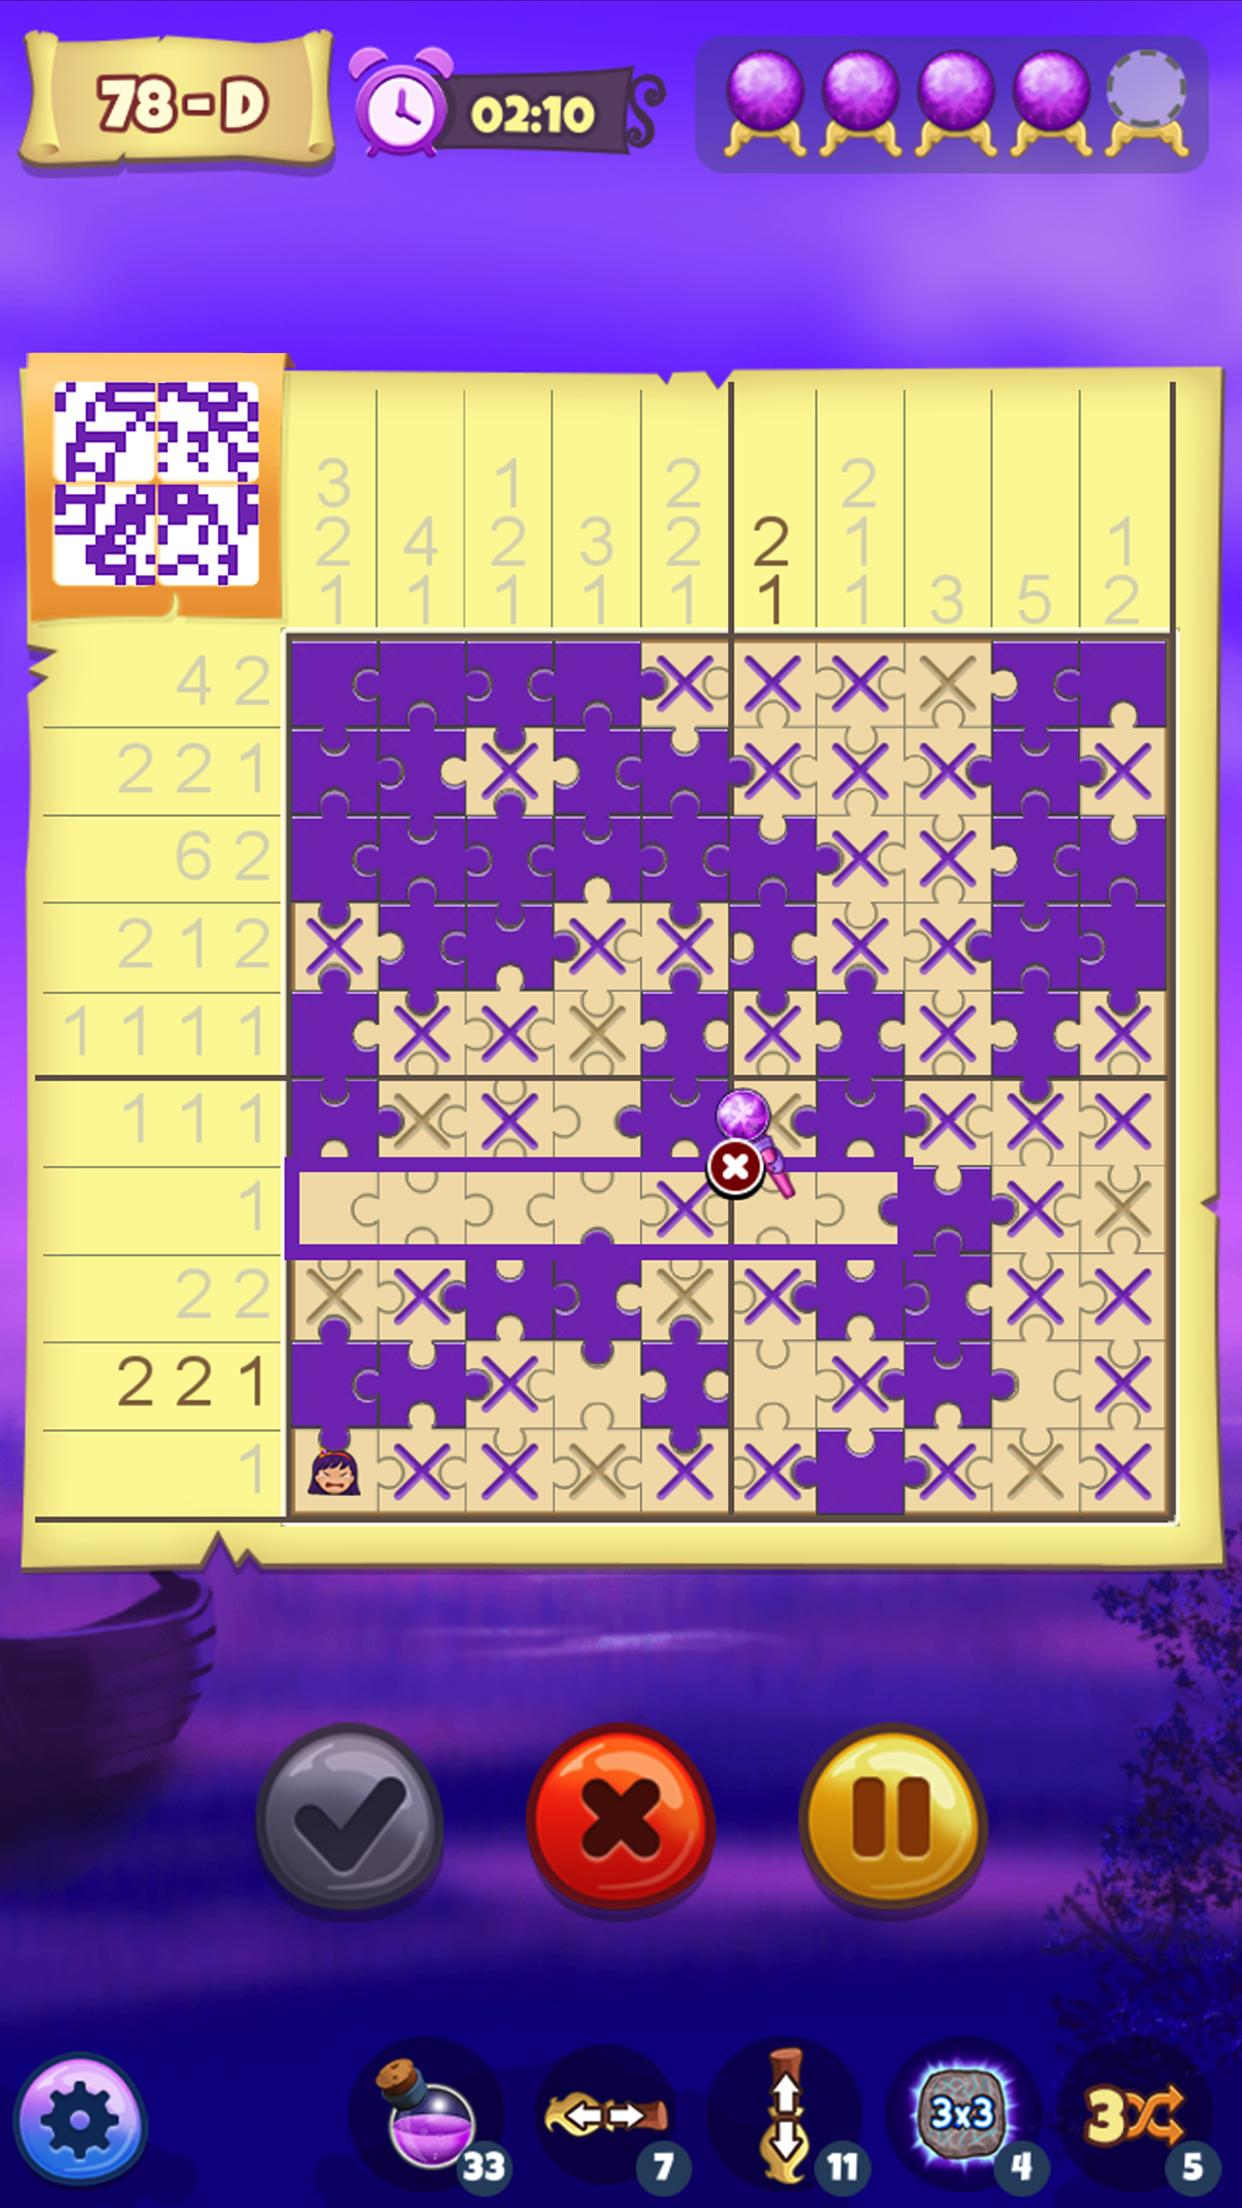 The Mystic Puzzland - Griddlers & Nonogram Puzzles 1.0.26 Screenshot 7